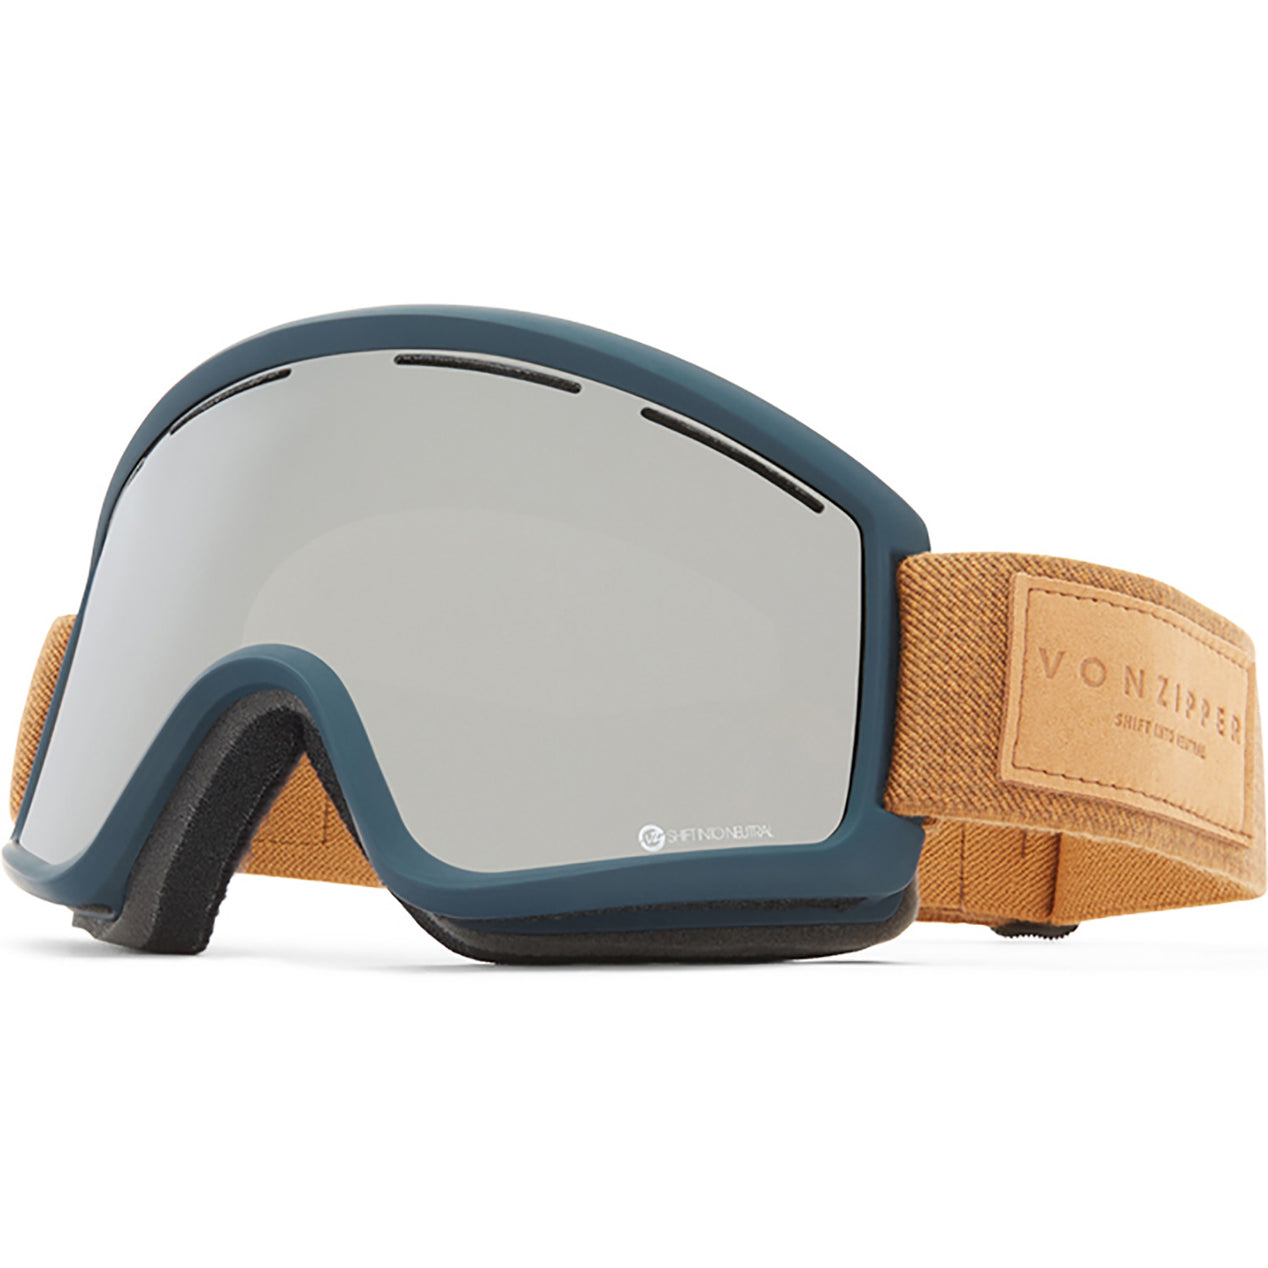 b741f8efd50 VonZipper Cleaver - S.I.N Navy Satin - Wildlife Silver Chrome Wildlife  Yellow Lens Goggle